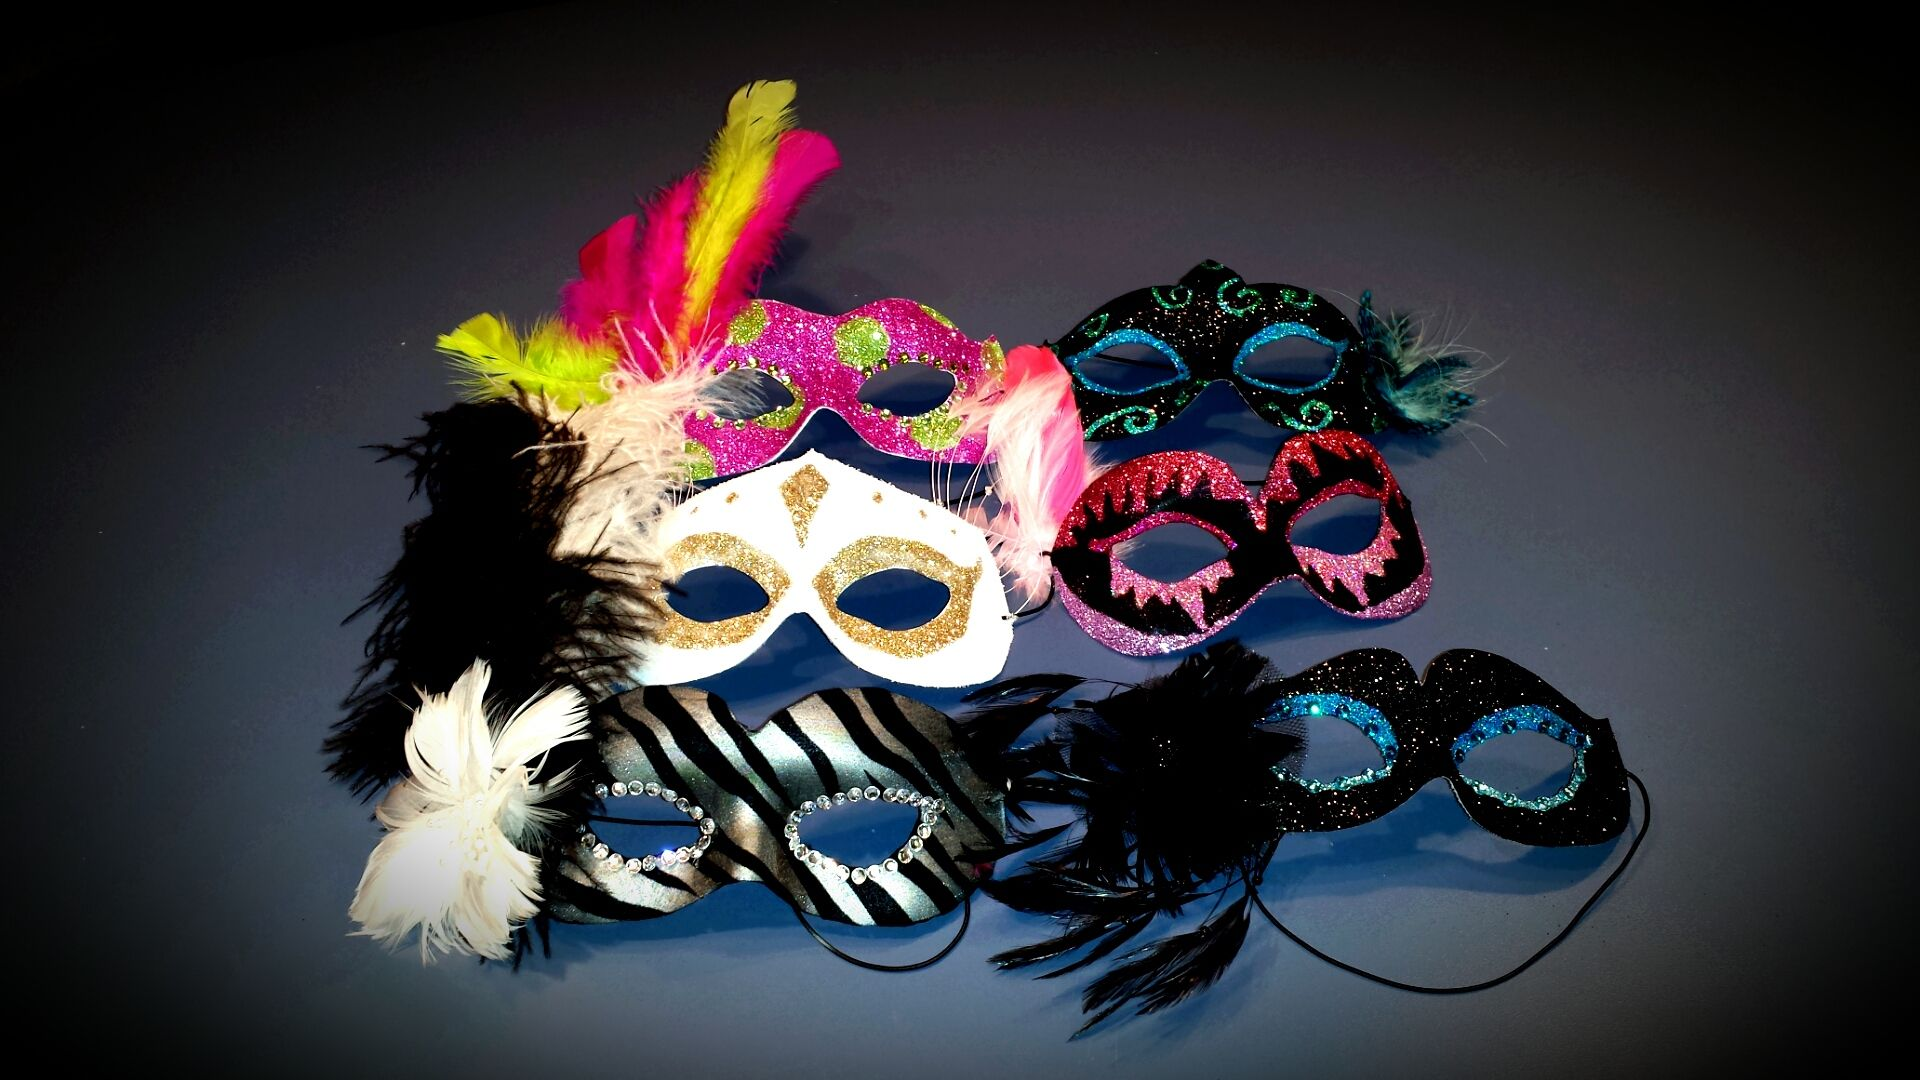 Plain Masks To Decorate Homemade Masquerade Masks Just Need Elmer's Glue Hot Glue